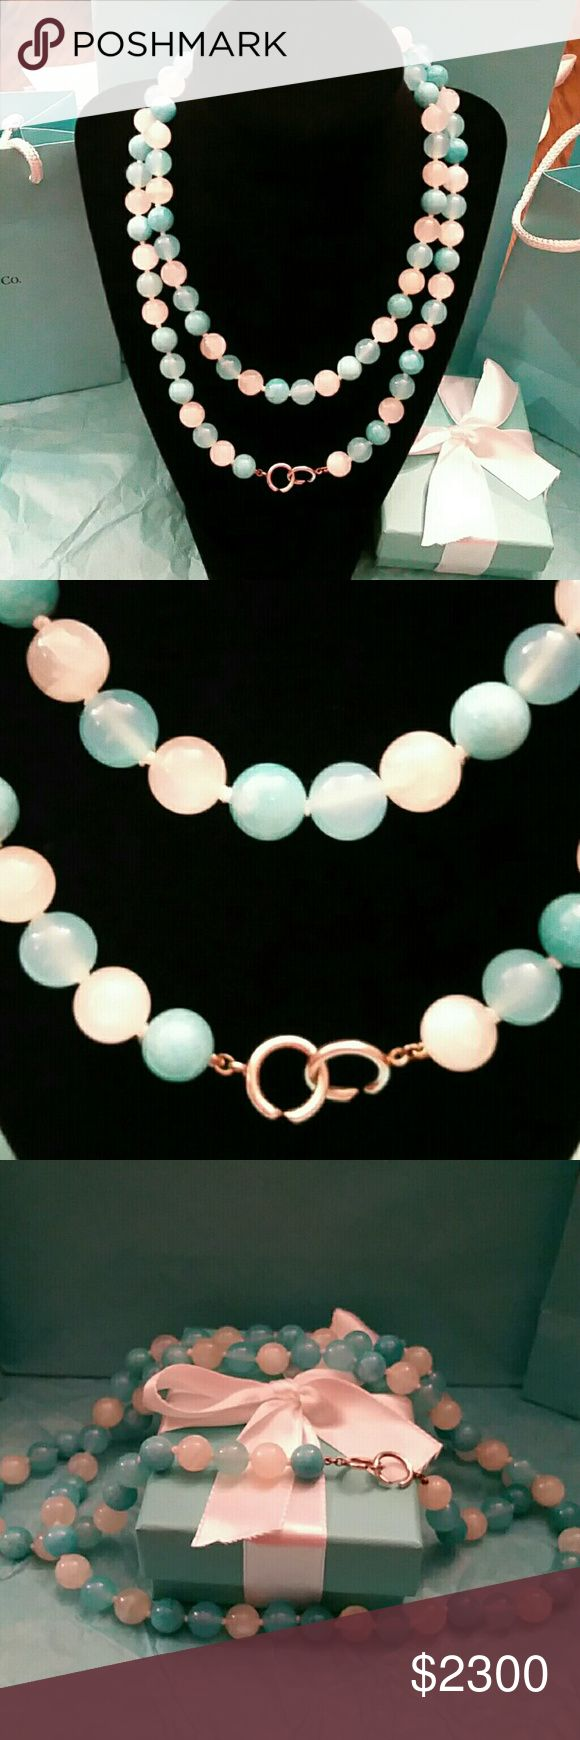 """Retired Tiffany & Co. Multi Gemstone Bead Ncklace Stunning Authentic Retired Rare Multi Gemstone (Amazonite, Chalcedony, Quartz) 36"""" Paloma Picasso Necklace! Excellent Practically New Condition! Qualifies for Free Poshmark Concierge Authentication Service! Includes Authentic Tiffany Box, Pouch, Ribbon & Gift Bag. Ready to wear or Gifted! Going for way more on other sites (see last pic)! Great gift for yourself orGraduation Gift! Reasonable offers considered!  Please allow up to 2 days to…"""